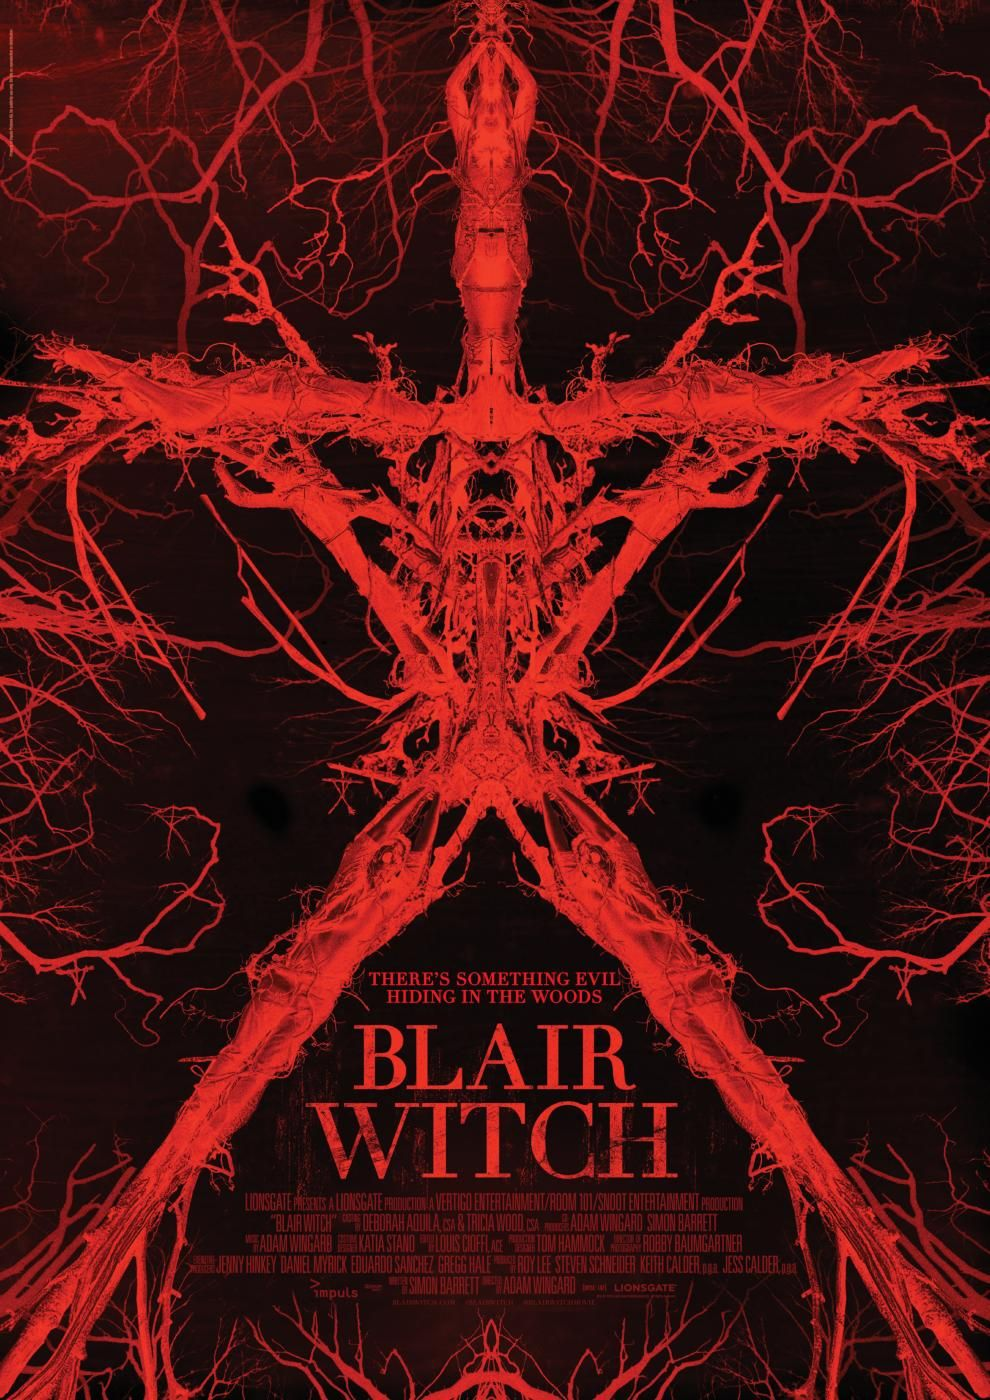 Blair Witch 2016 Bilder Blair Witch Project The Witch Film Horrorfilm Poster